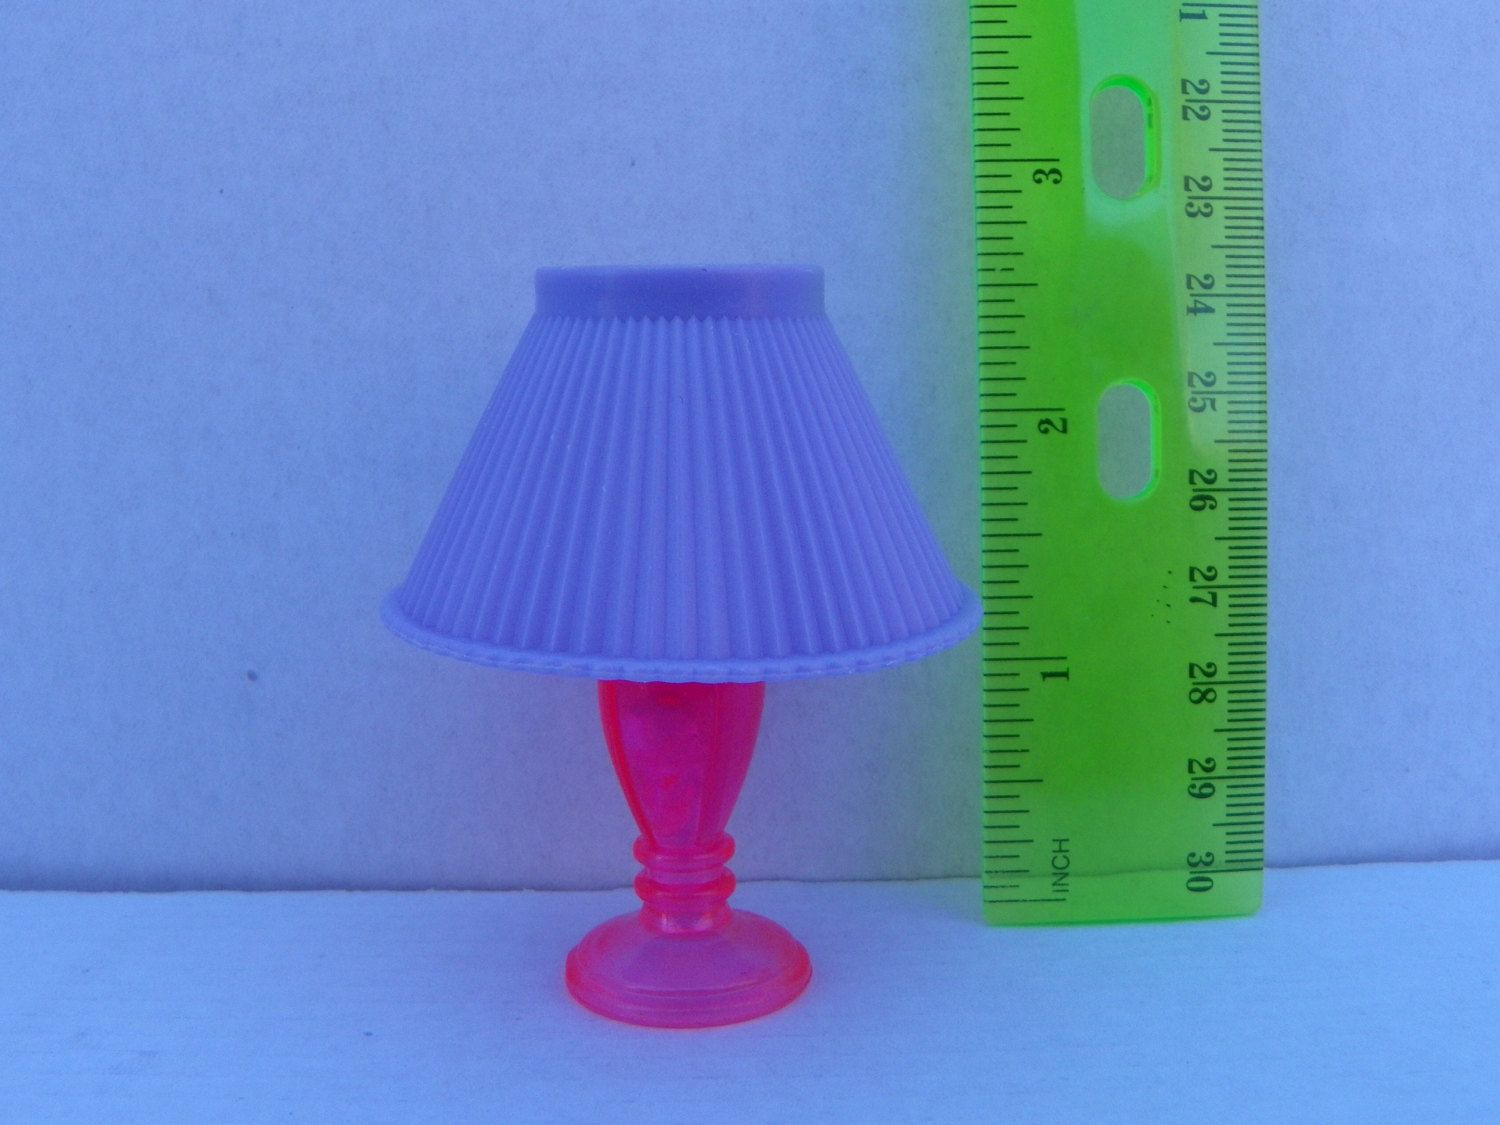 Vintage 1 6 1 6 Scale Barbie Lamp Barbie Dollhouse Furniture Lamp Dollhouse Furniture Fixture Table